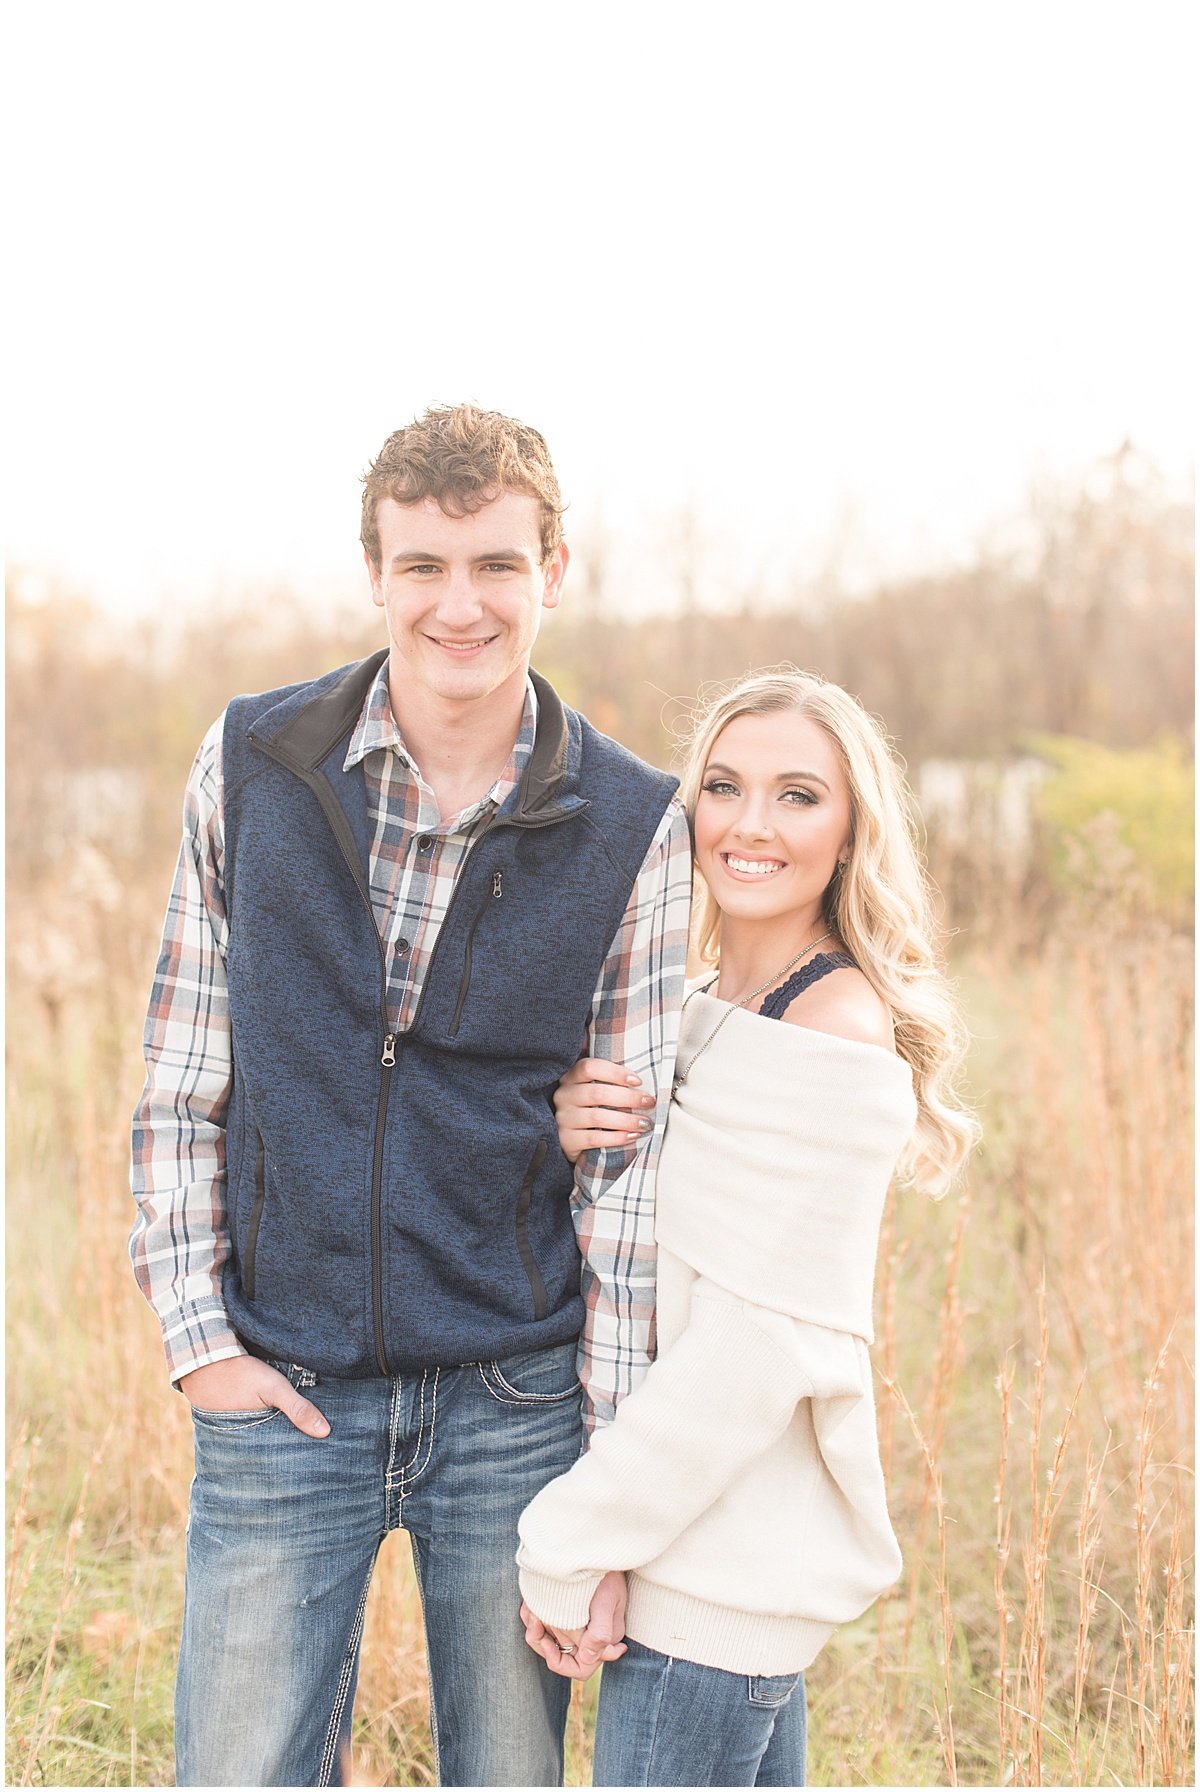 Wyatt Willson and Kaelyn Shircliff engagement session at Fairfield Lakes Park in Lafayette Indiana 13.jpg